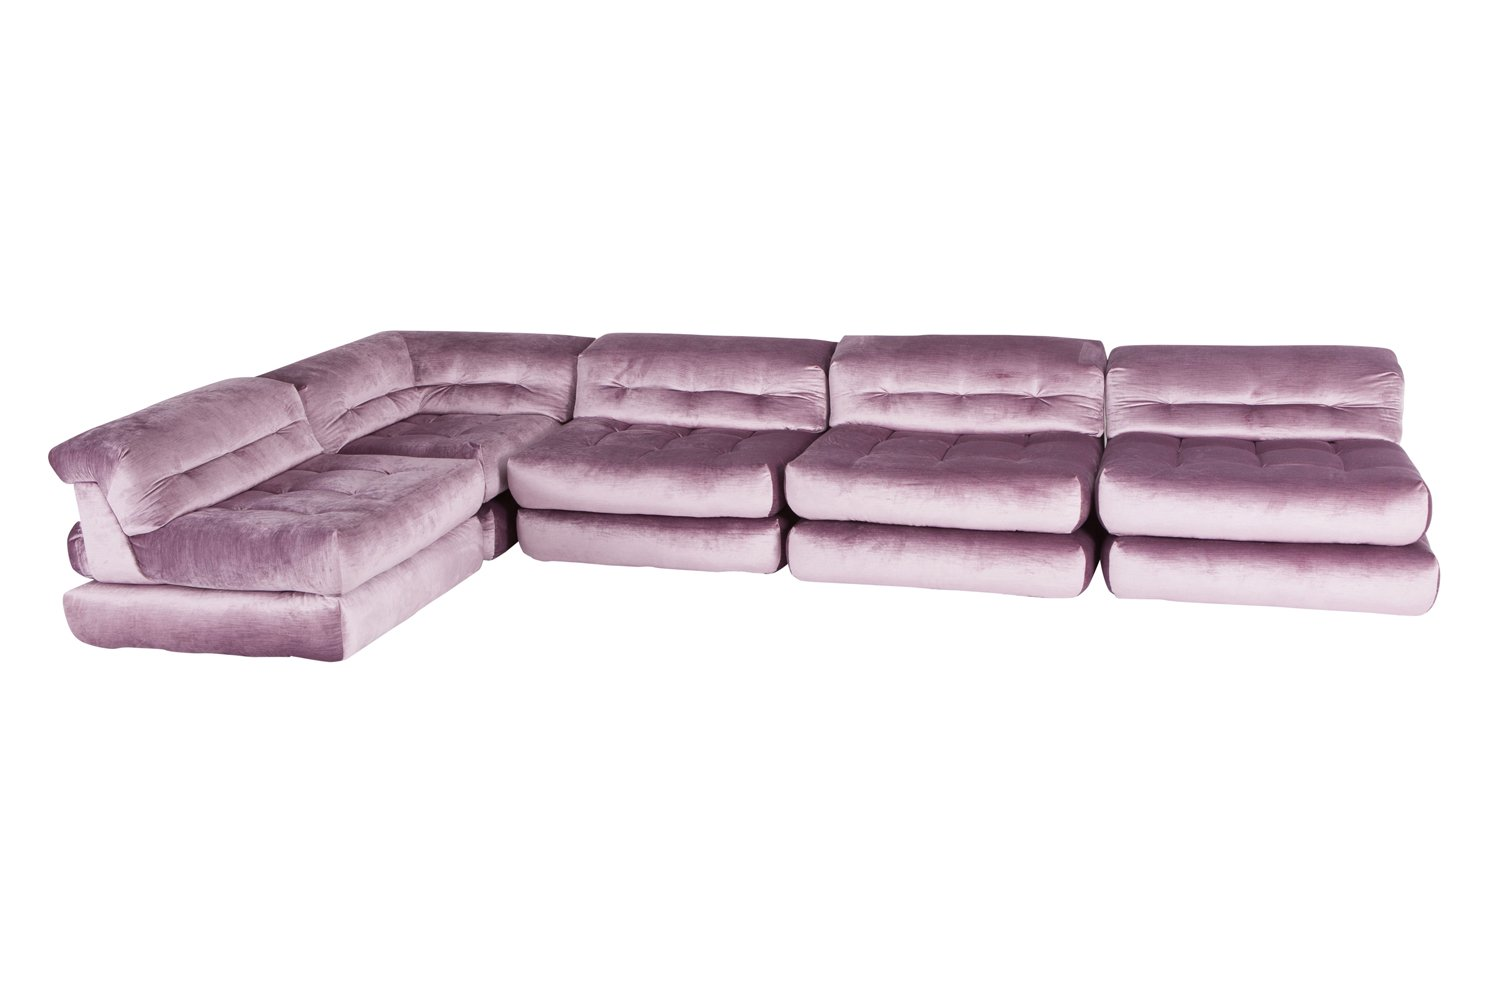 the mah jong sofa from ligne roset mid century style bed uk modular in purple velvet by hans hopfer